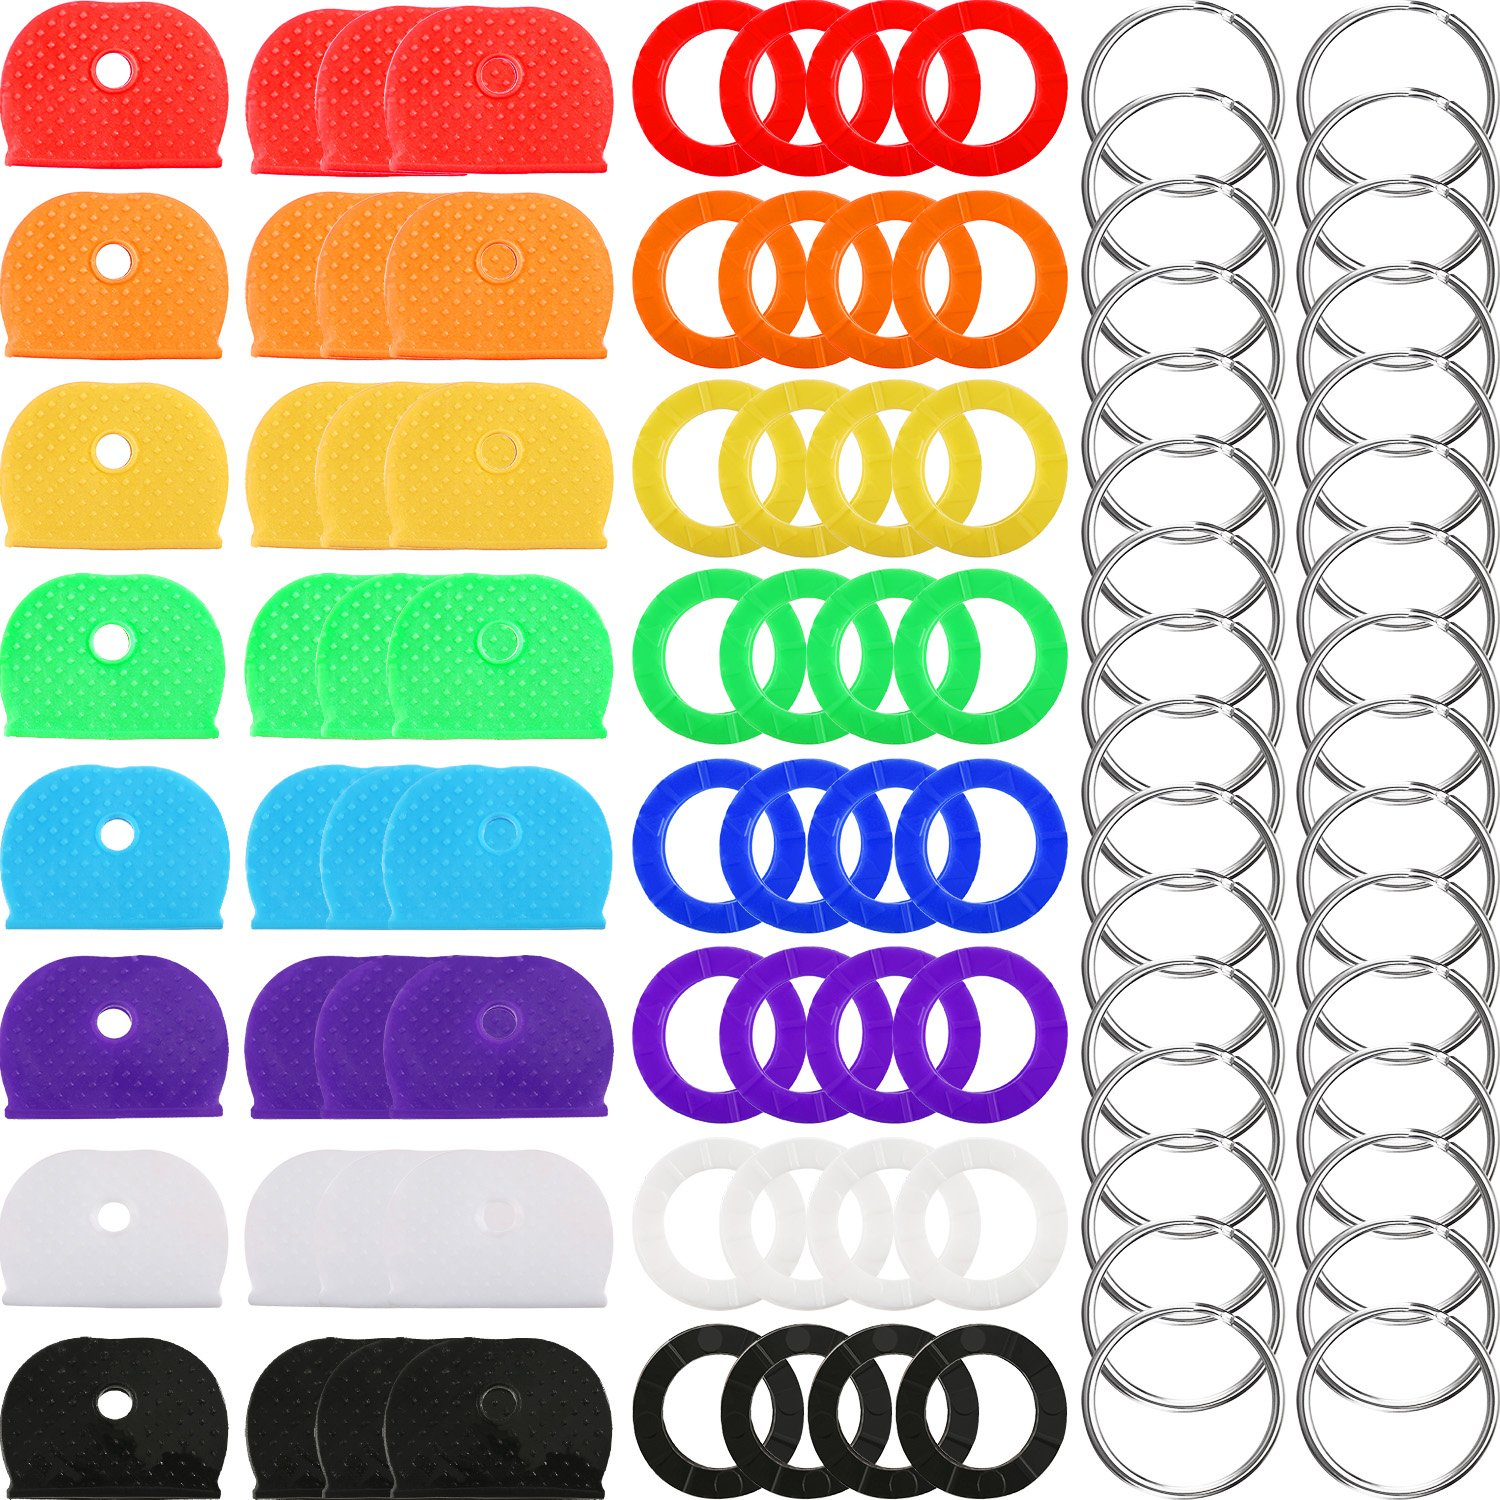 64 Pieces Key Caps Covers Kit, Plastic Key Identifier Rings in 8 Different Colors with 32 Pieces Steel Key Rings for Keys Organization Chuangchou